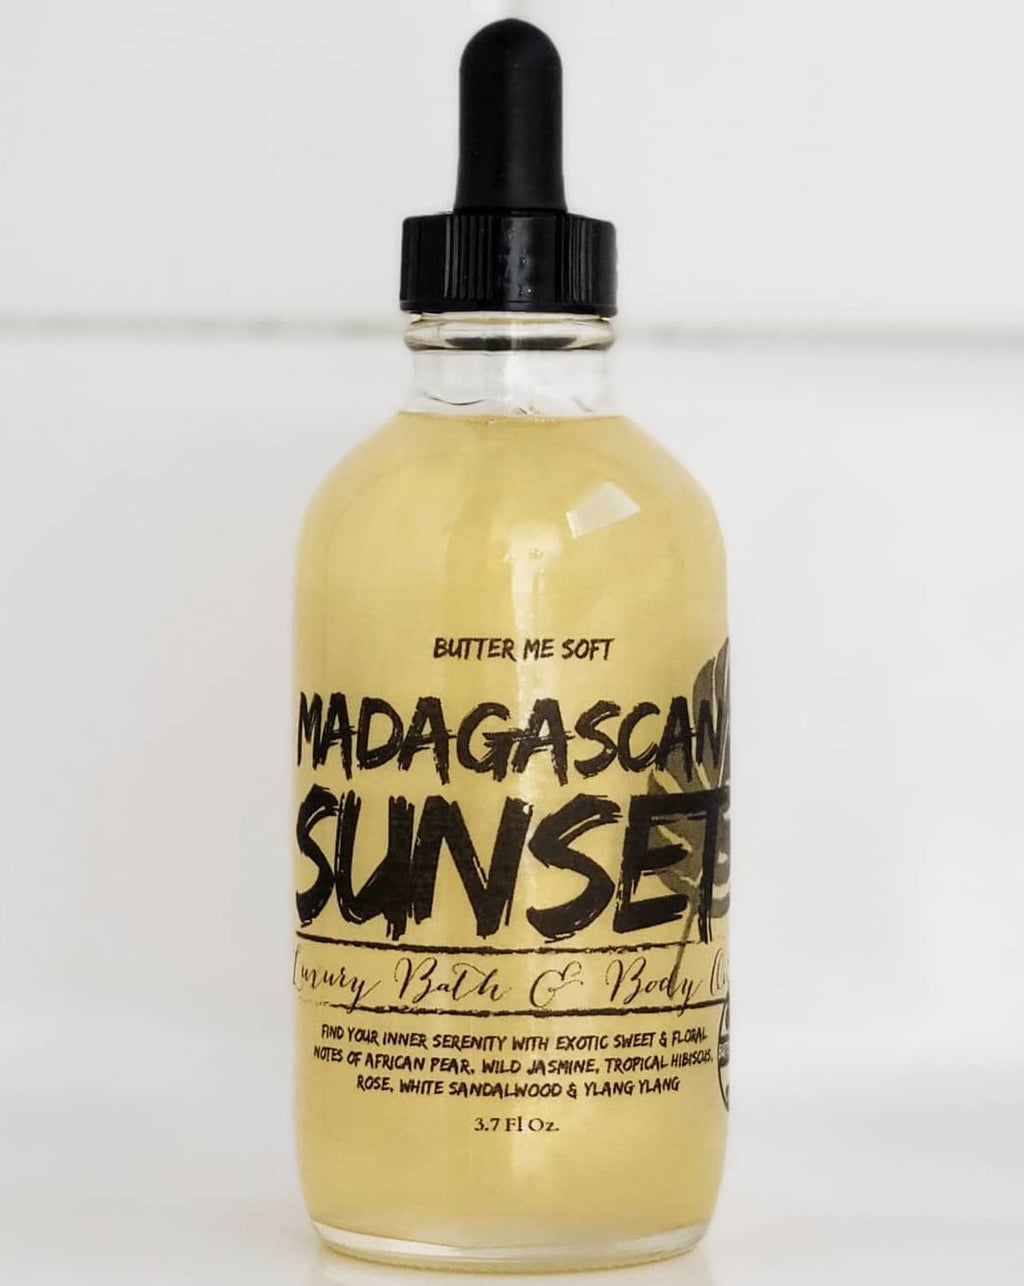 Madagascan Sunset Bath & Body Oil